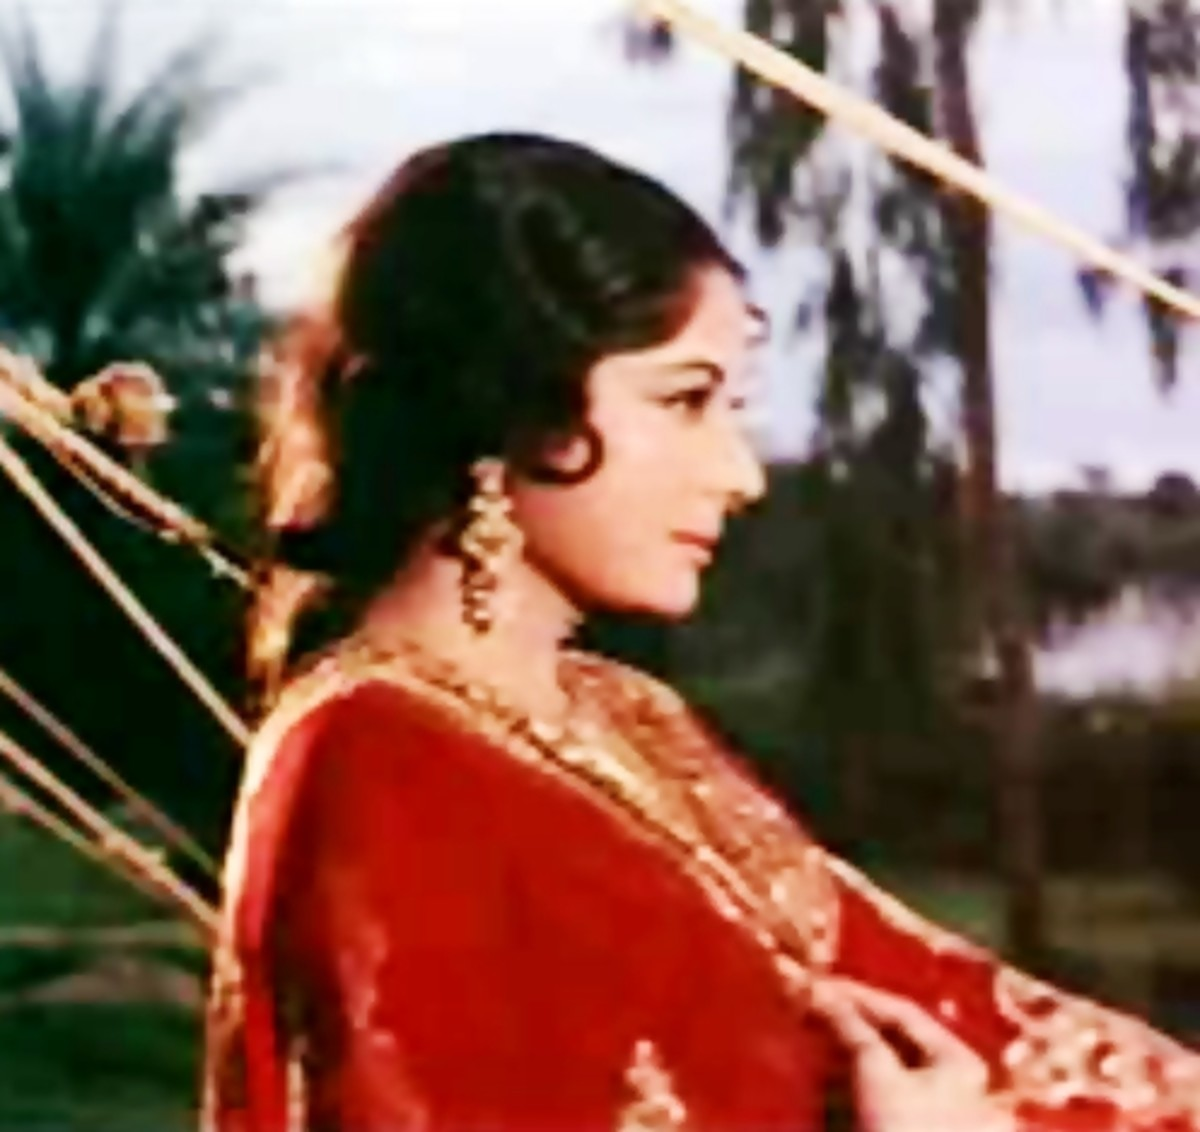 Meena Kumari in Pakeezah : This song is made of music of nature and purity